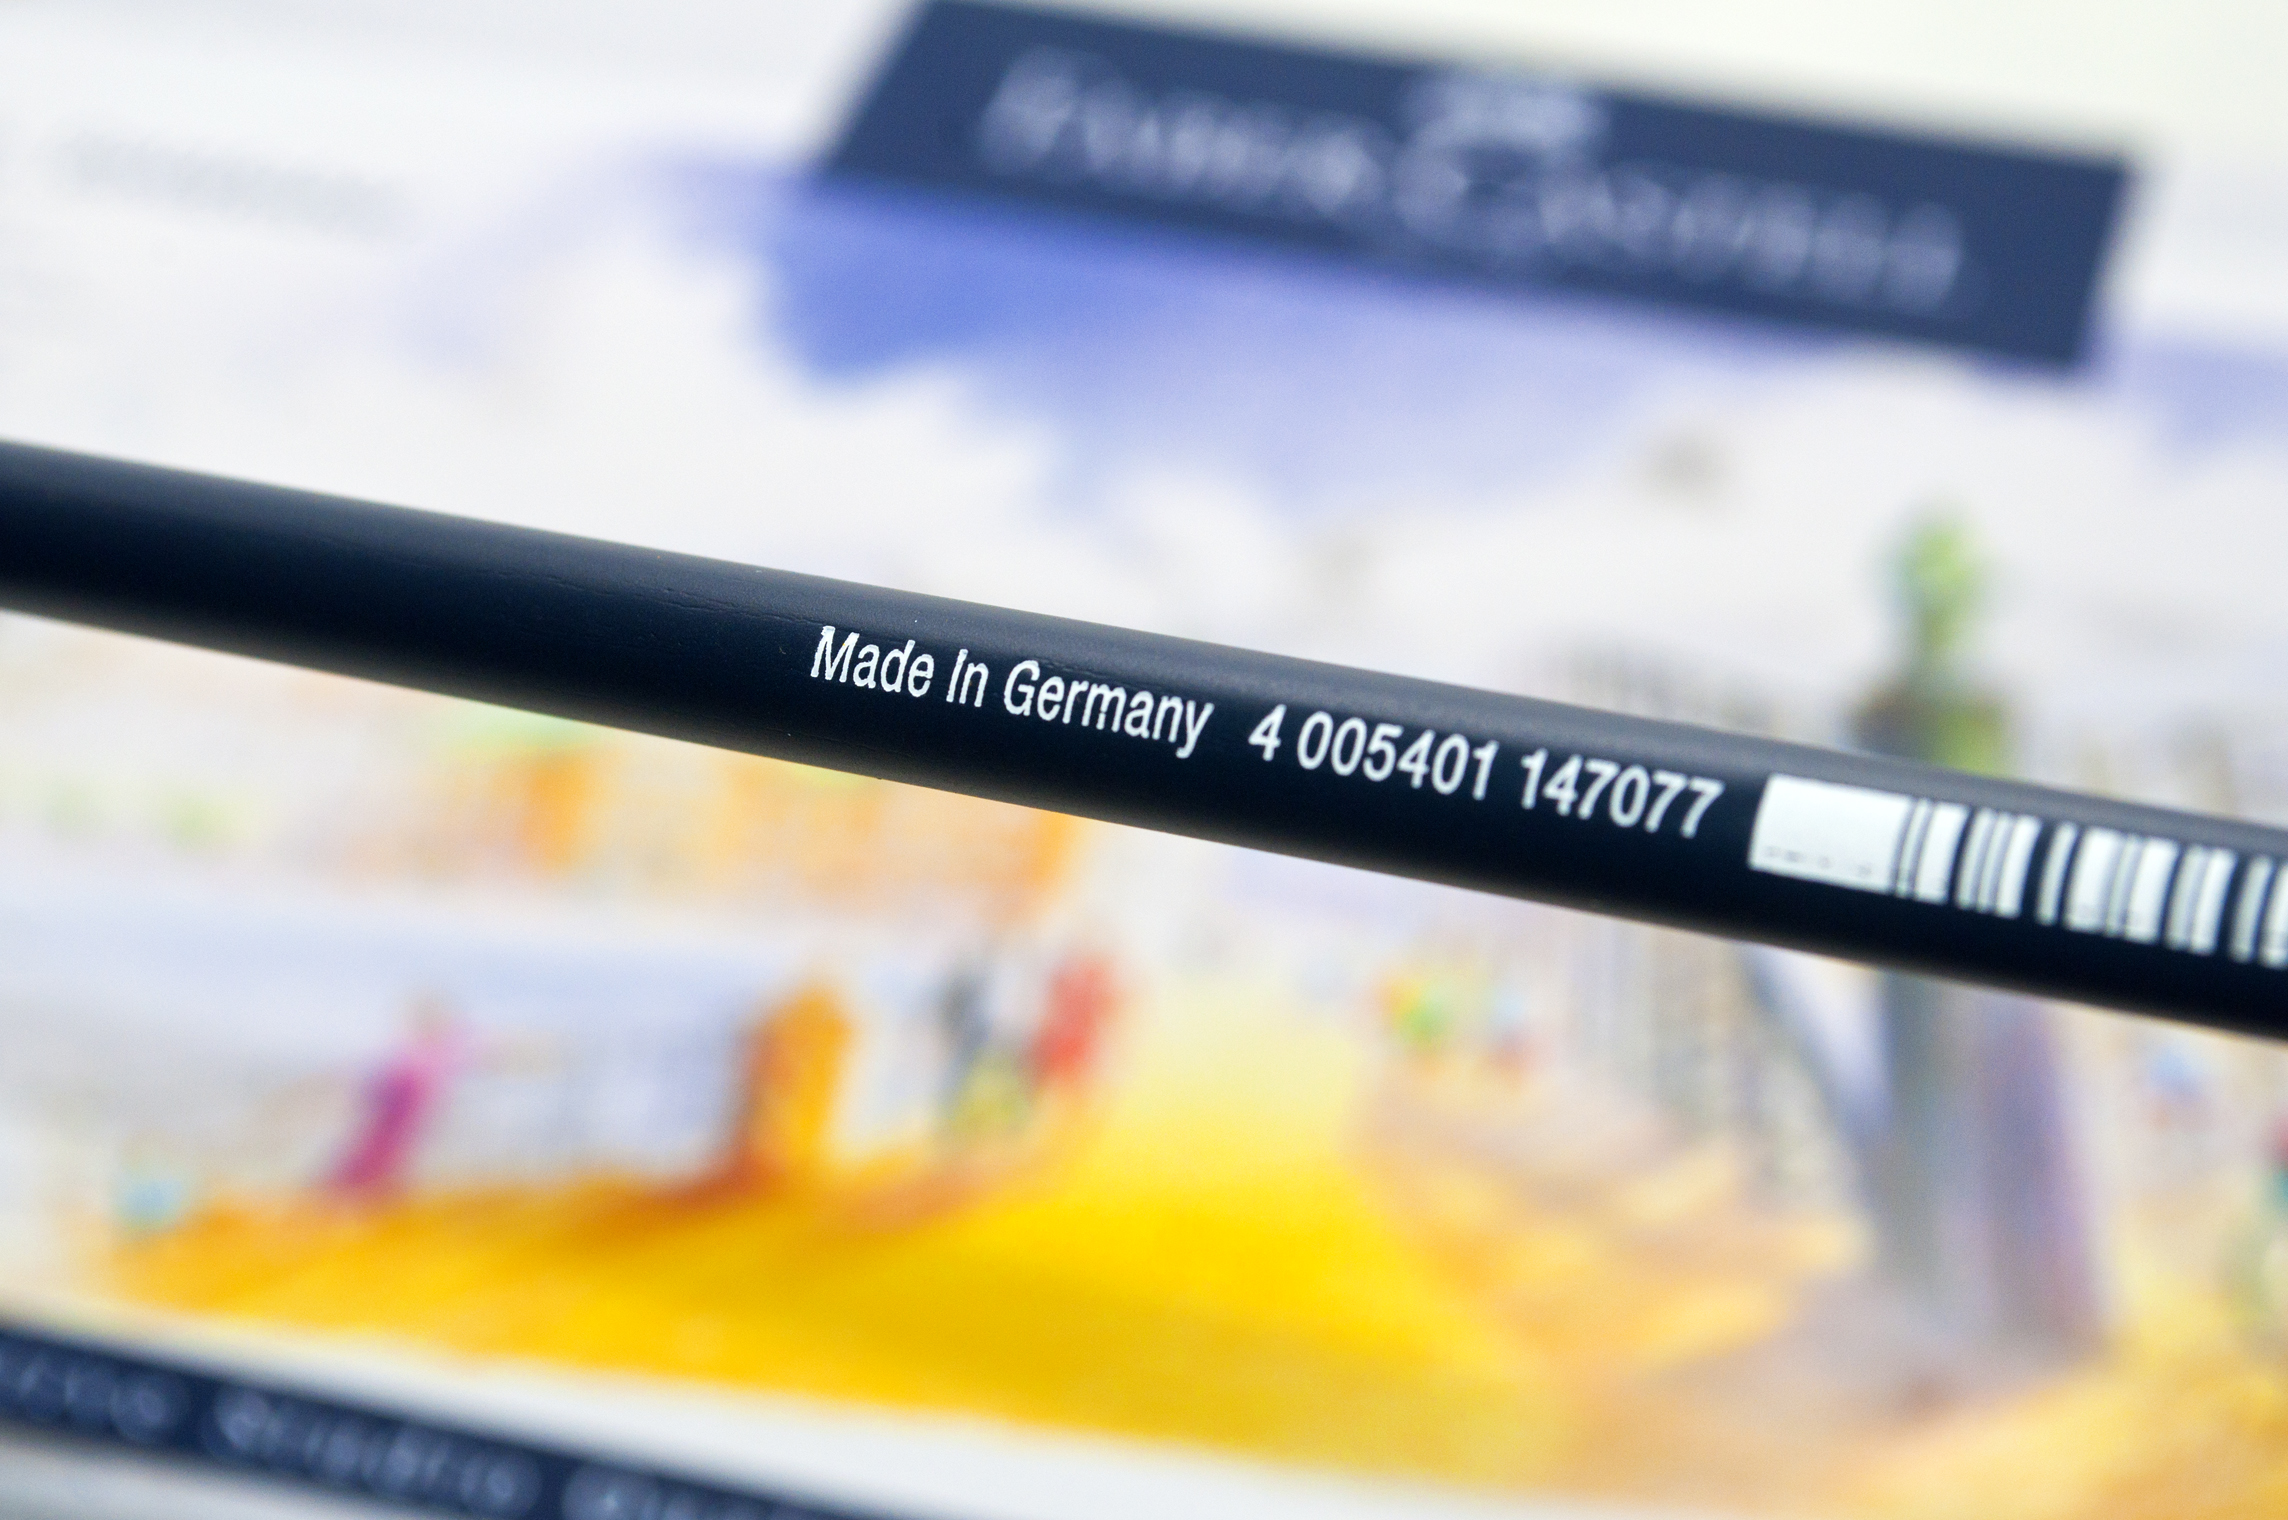 Goldfaber Made In Germany.jpg